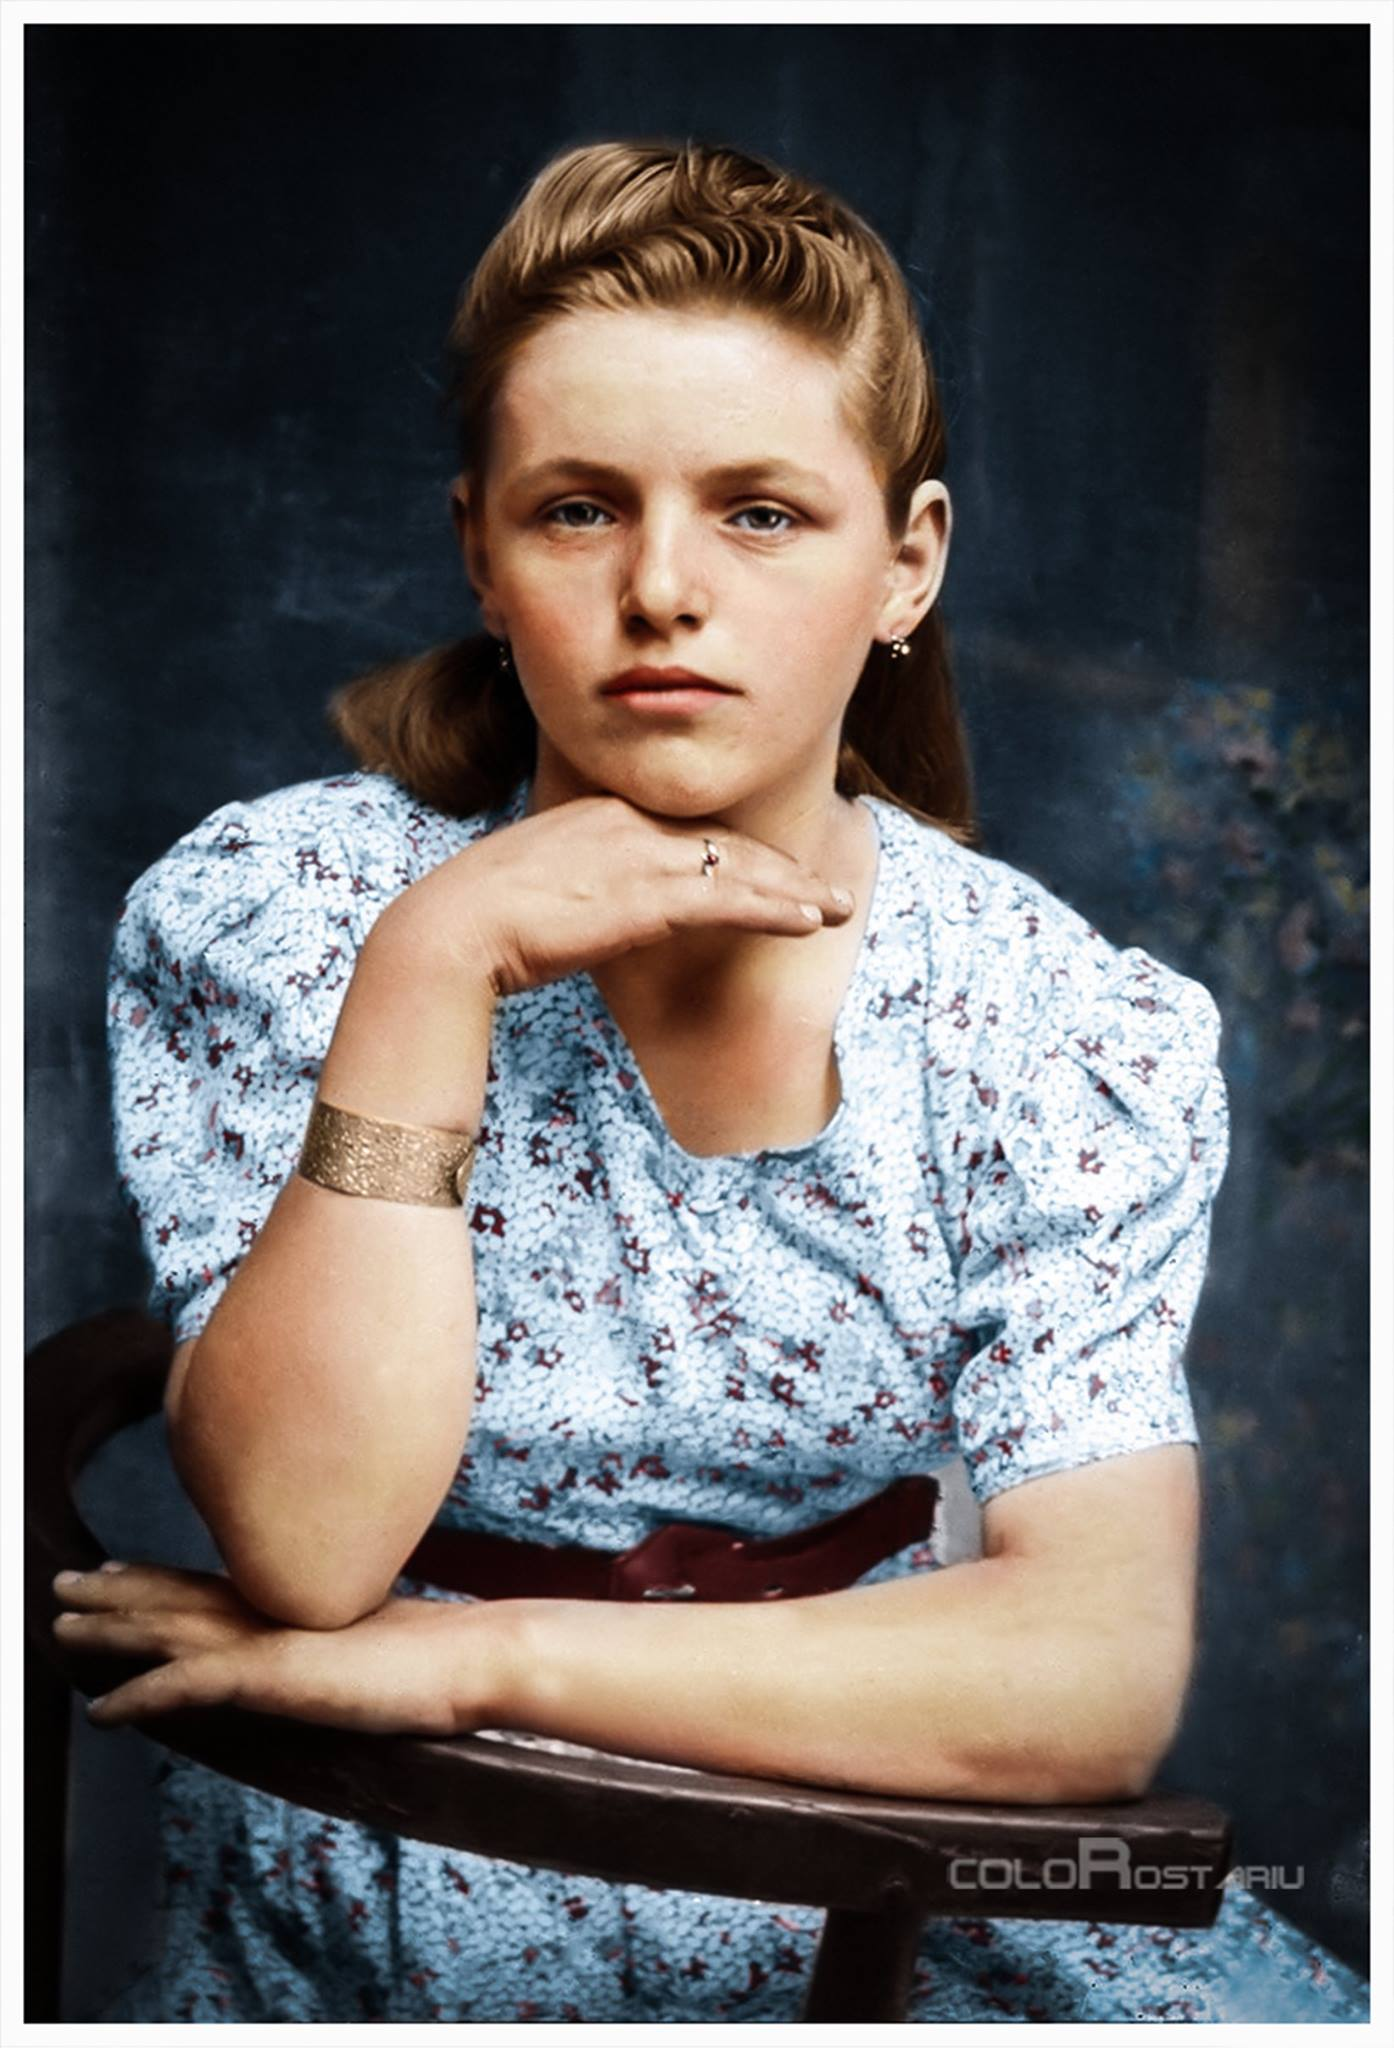 a-beautiful-romanian-girl-of-the-1940-s-fashion-romania-colored-photo-costica-acsinte-photo-colections-bucharest-bucuresti-slobozia.jpg